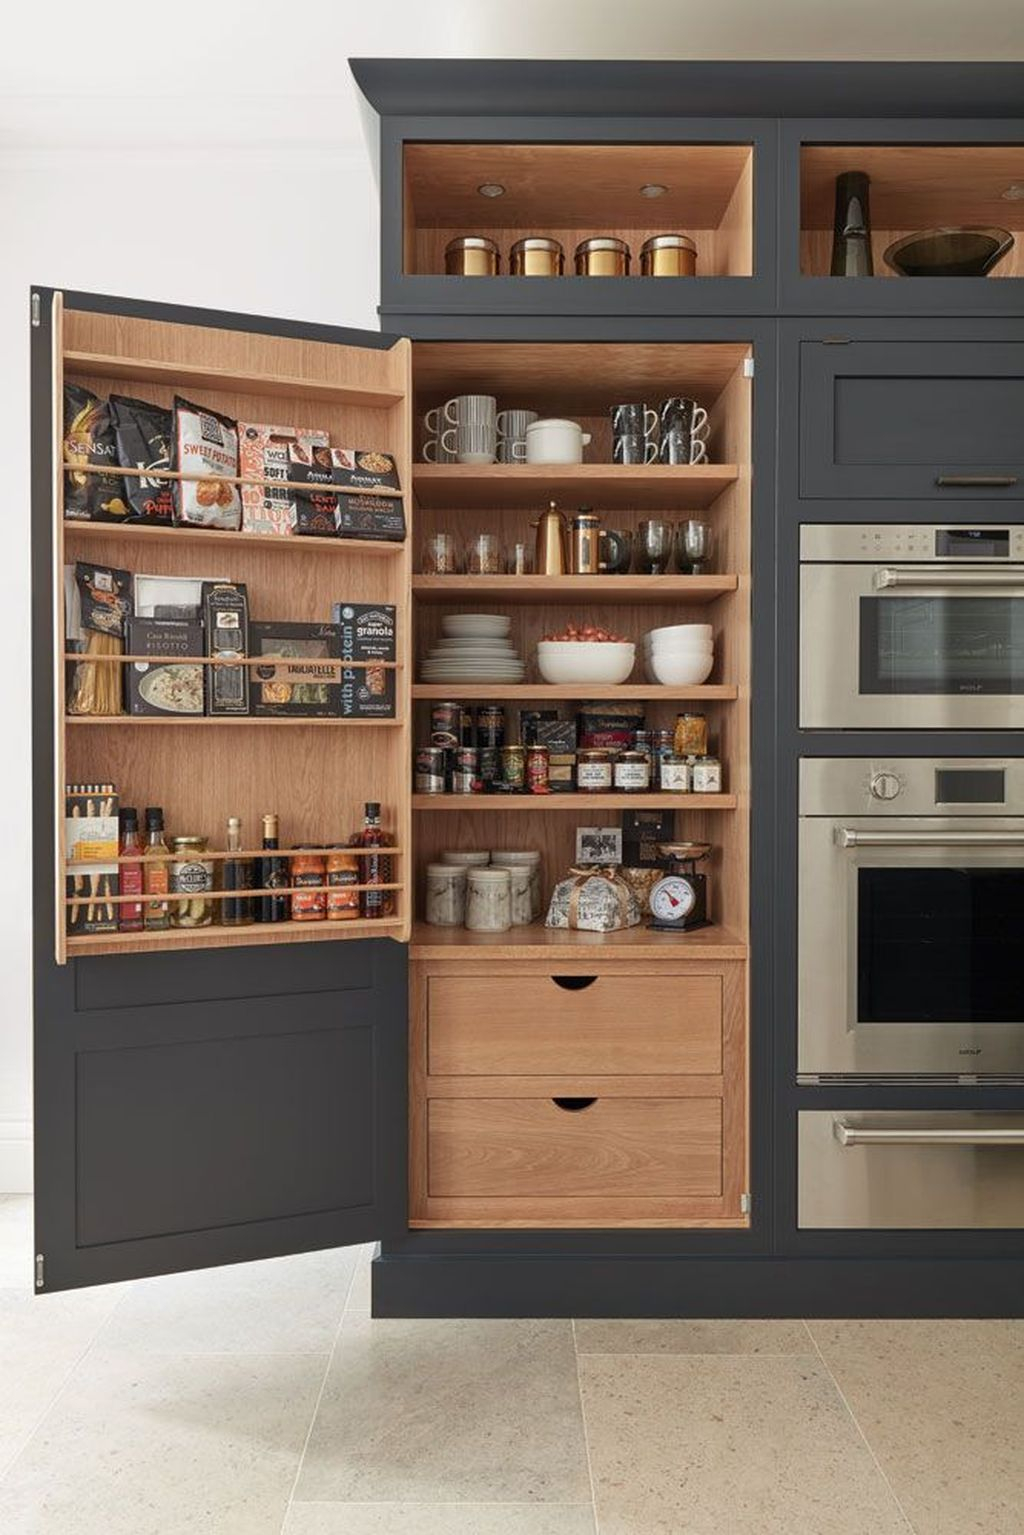 Impressive Kitchen Design Ideas You Can Try In Your Dream Home 17